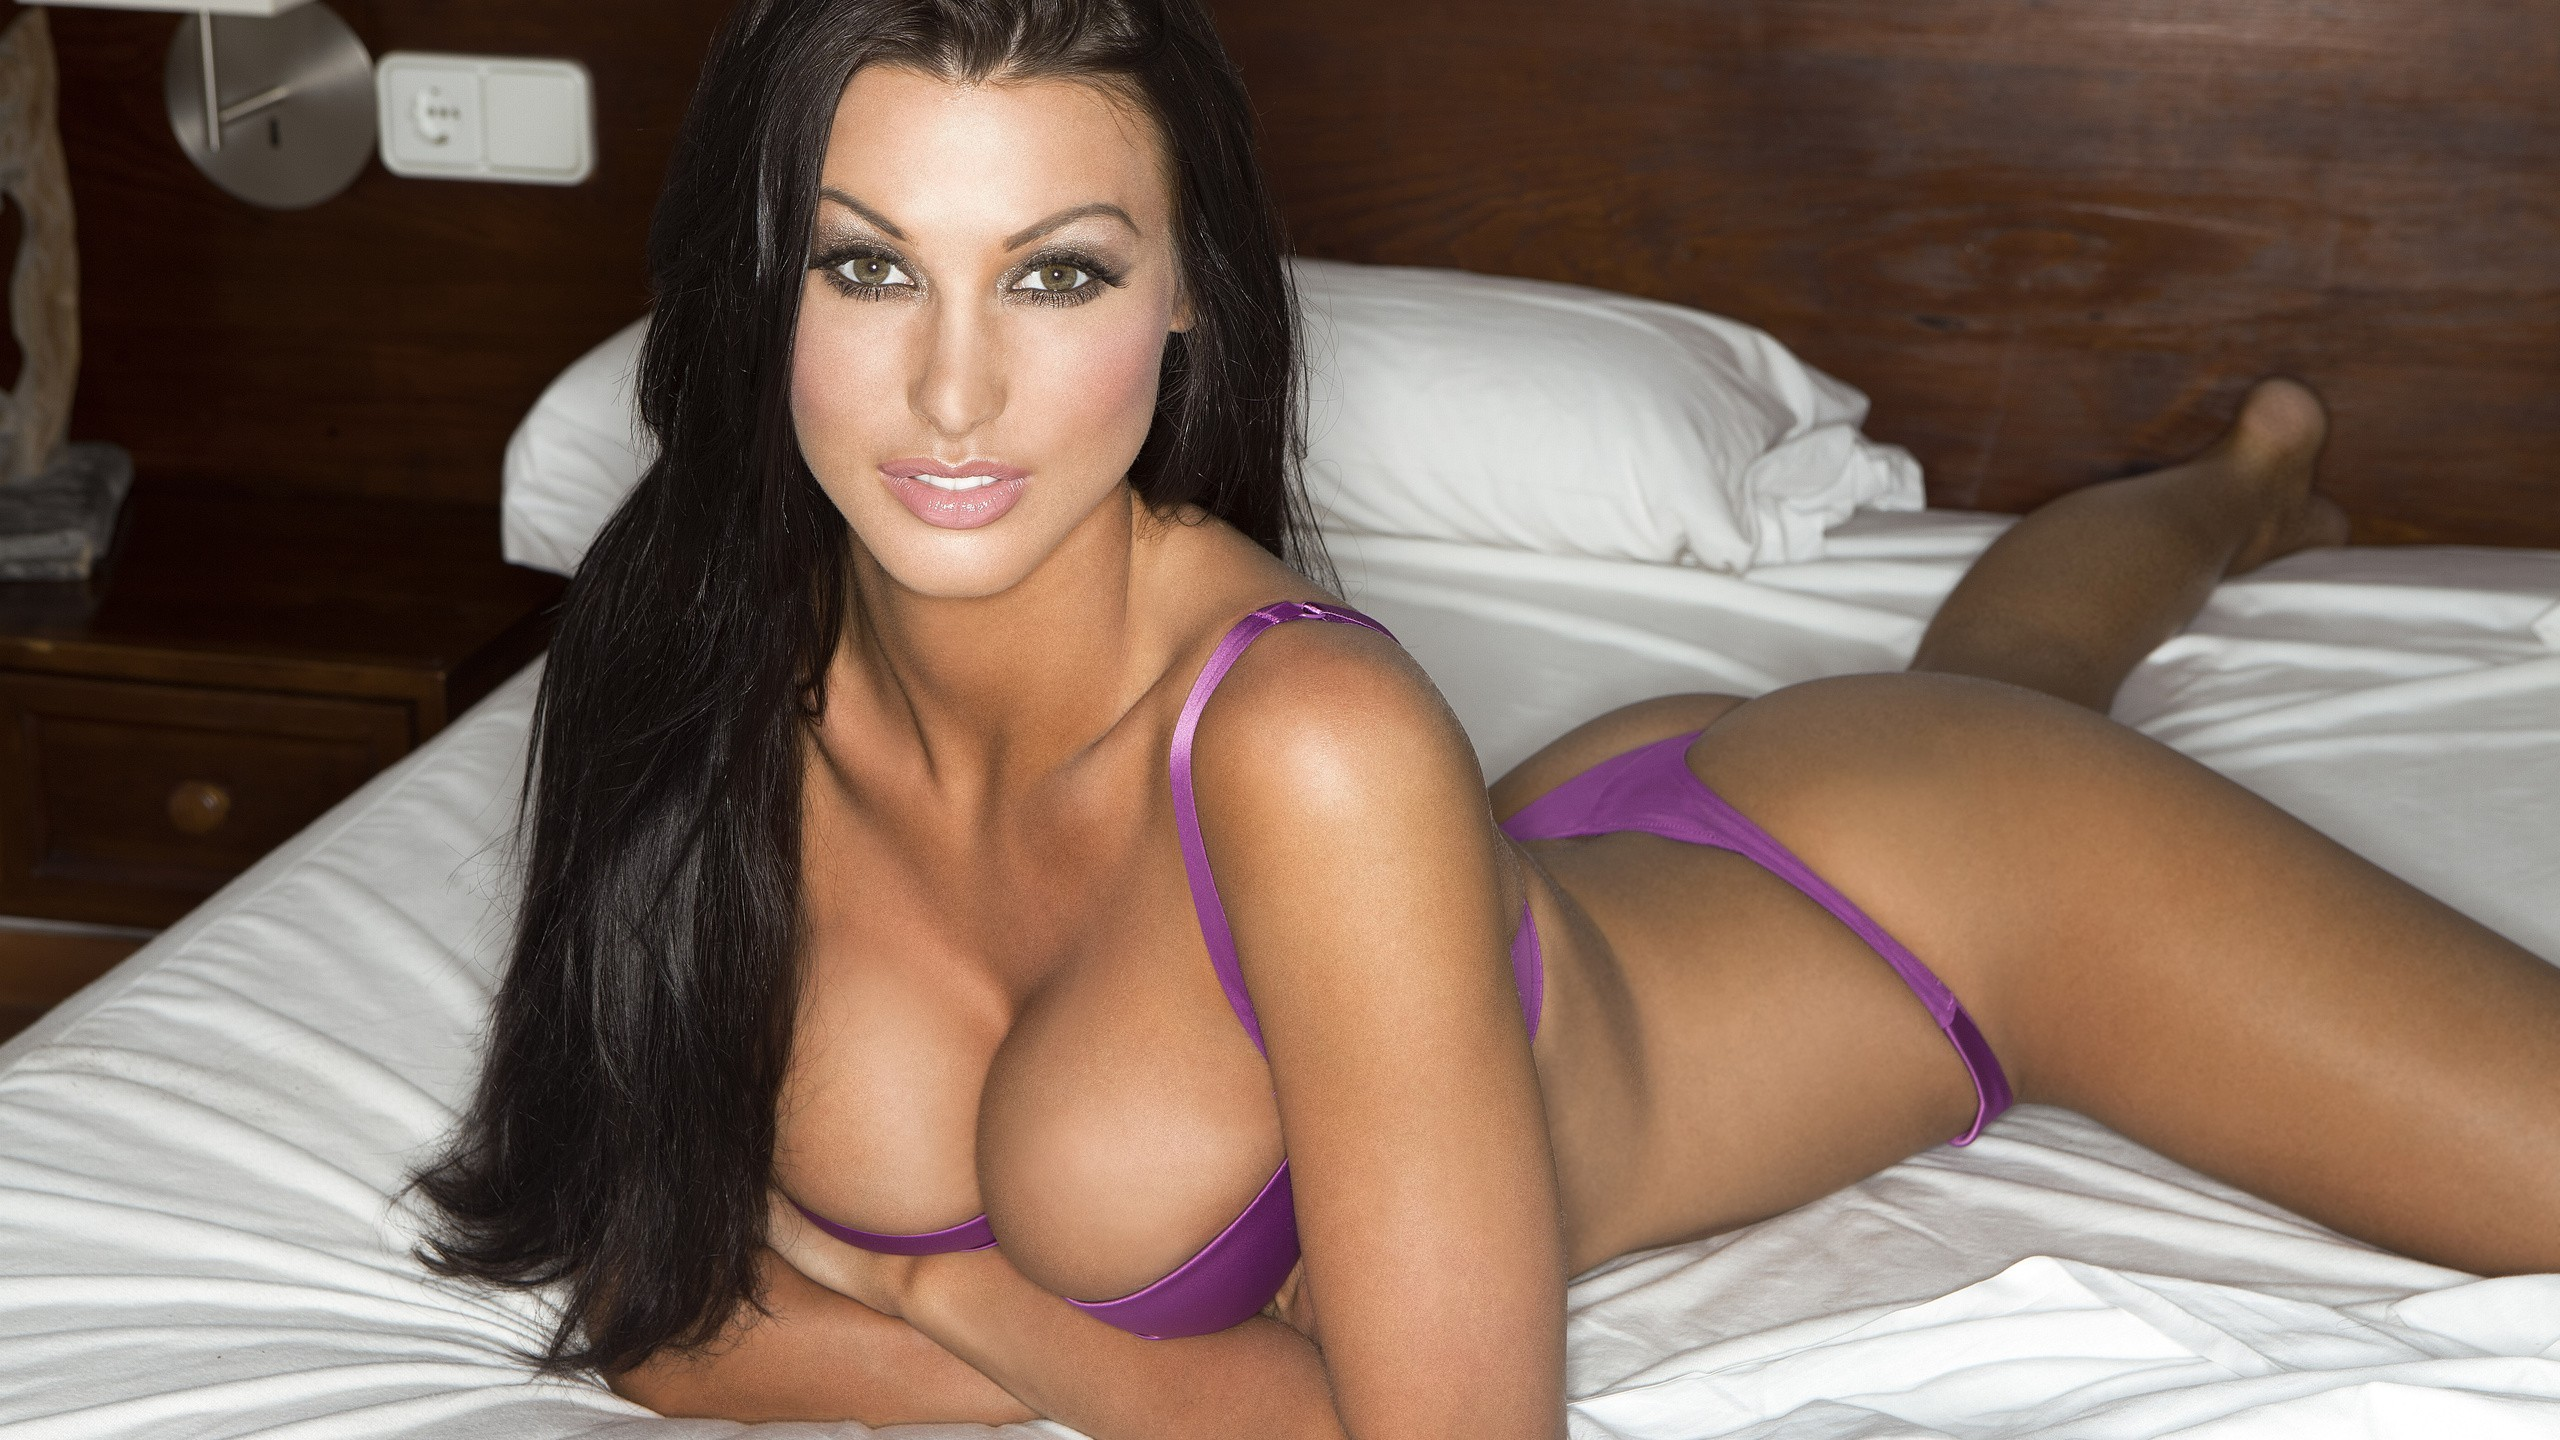 big boobs, lingerie, alice goodwin - wallpaper #175555 (2560x1440px